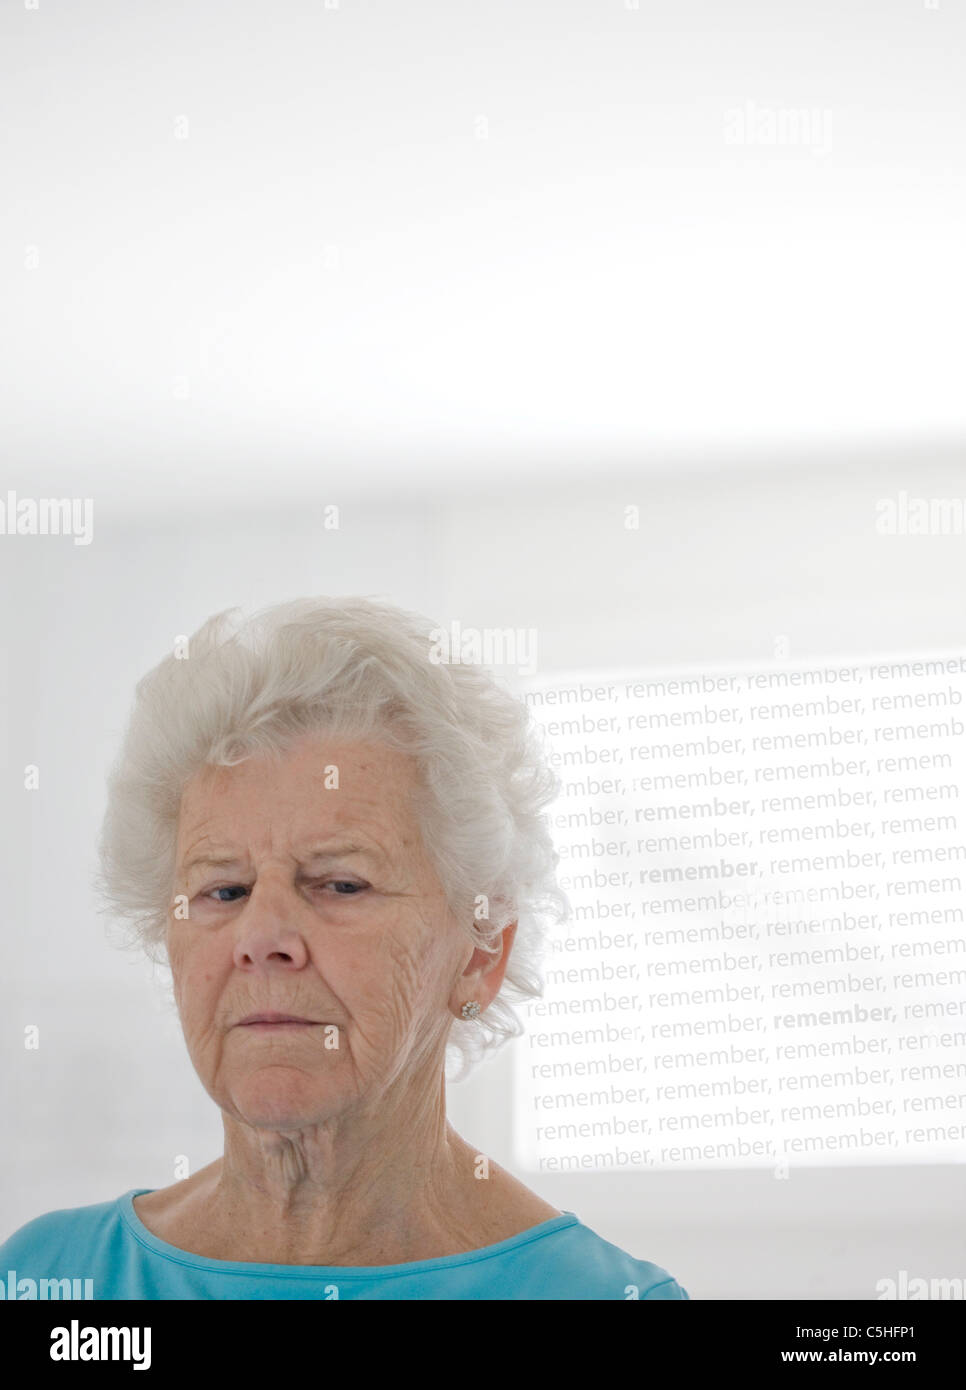 Elderly woman - Stock Image